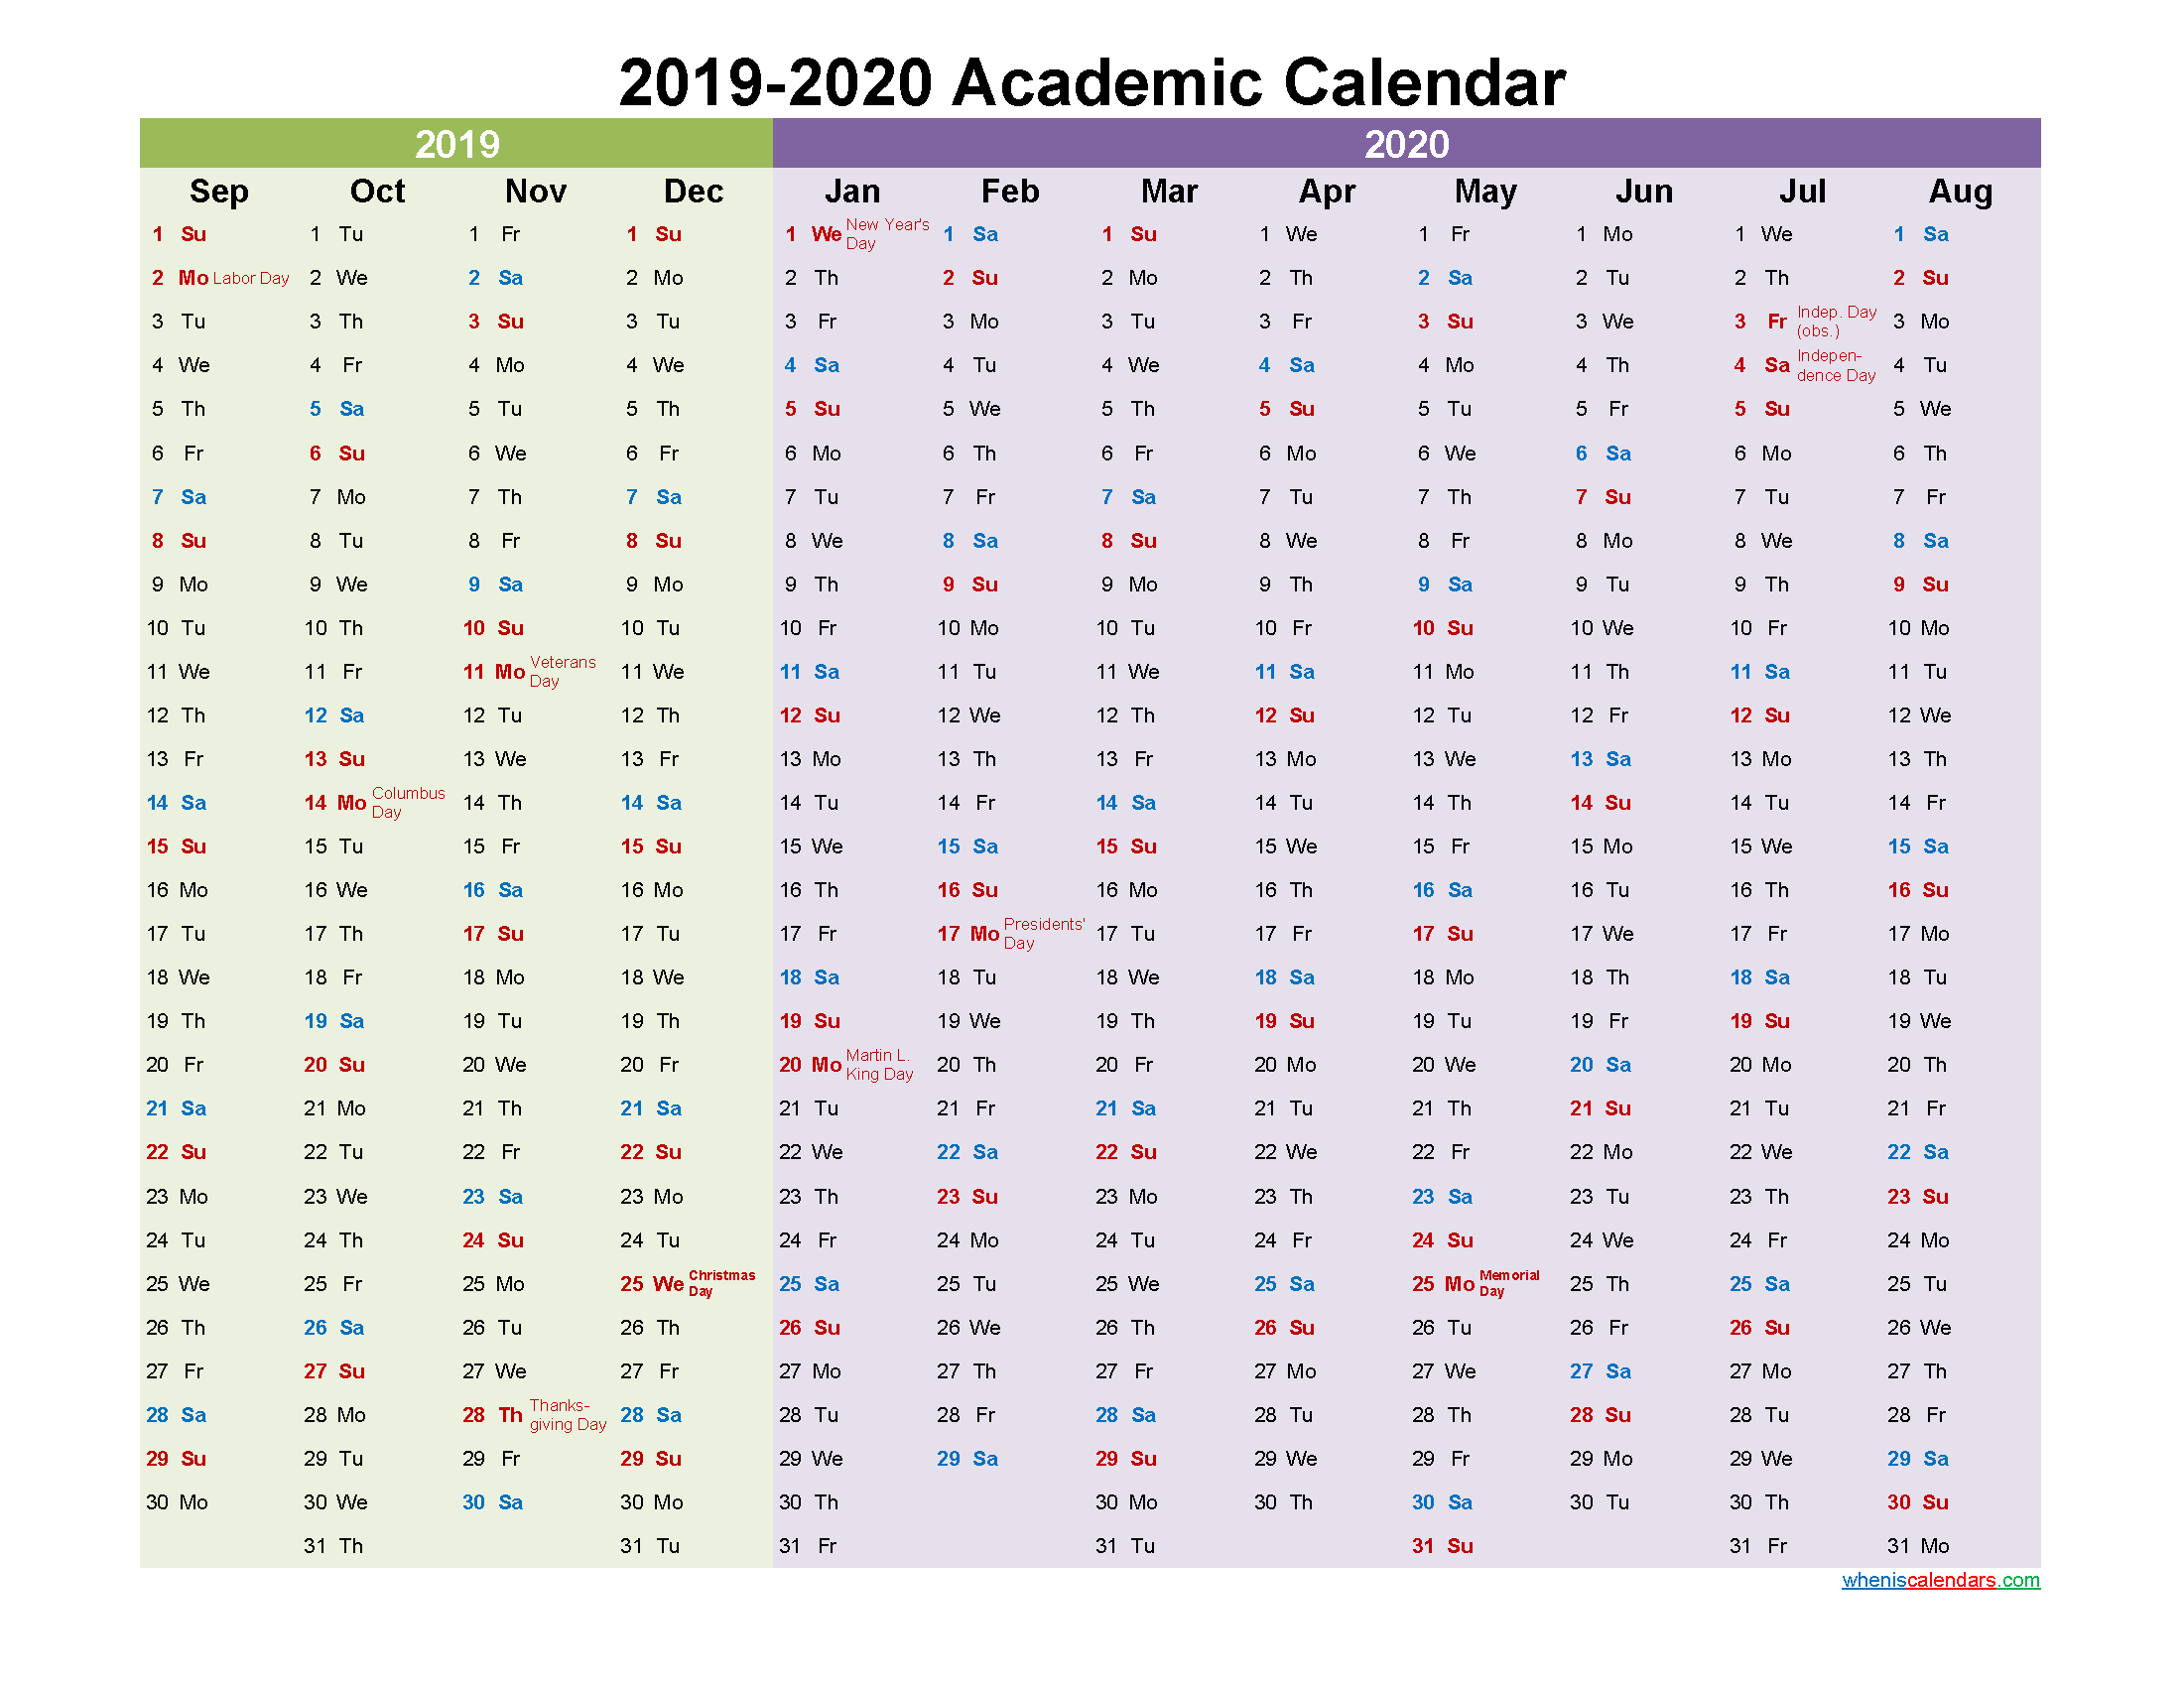 Academic Calendar 2019 and 2020 Printable